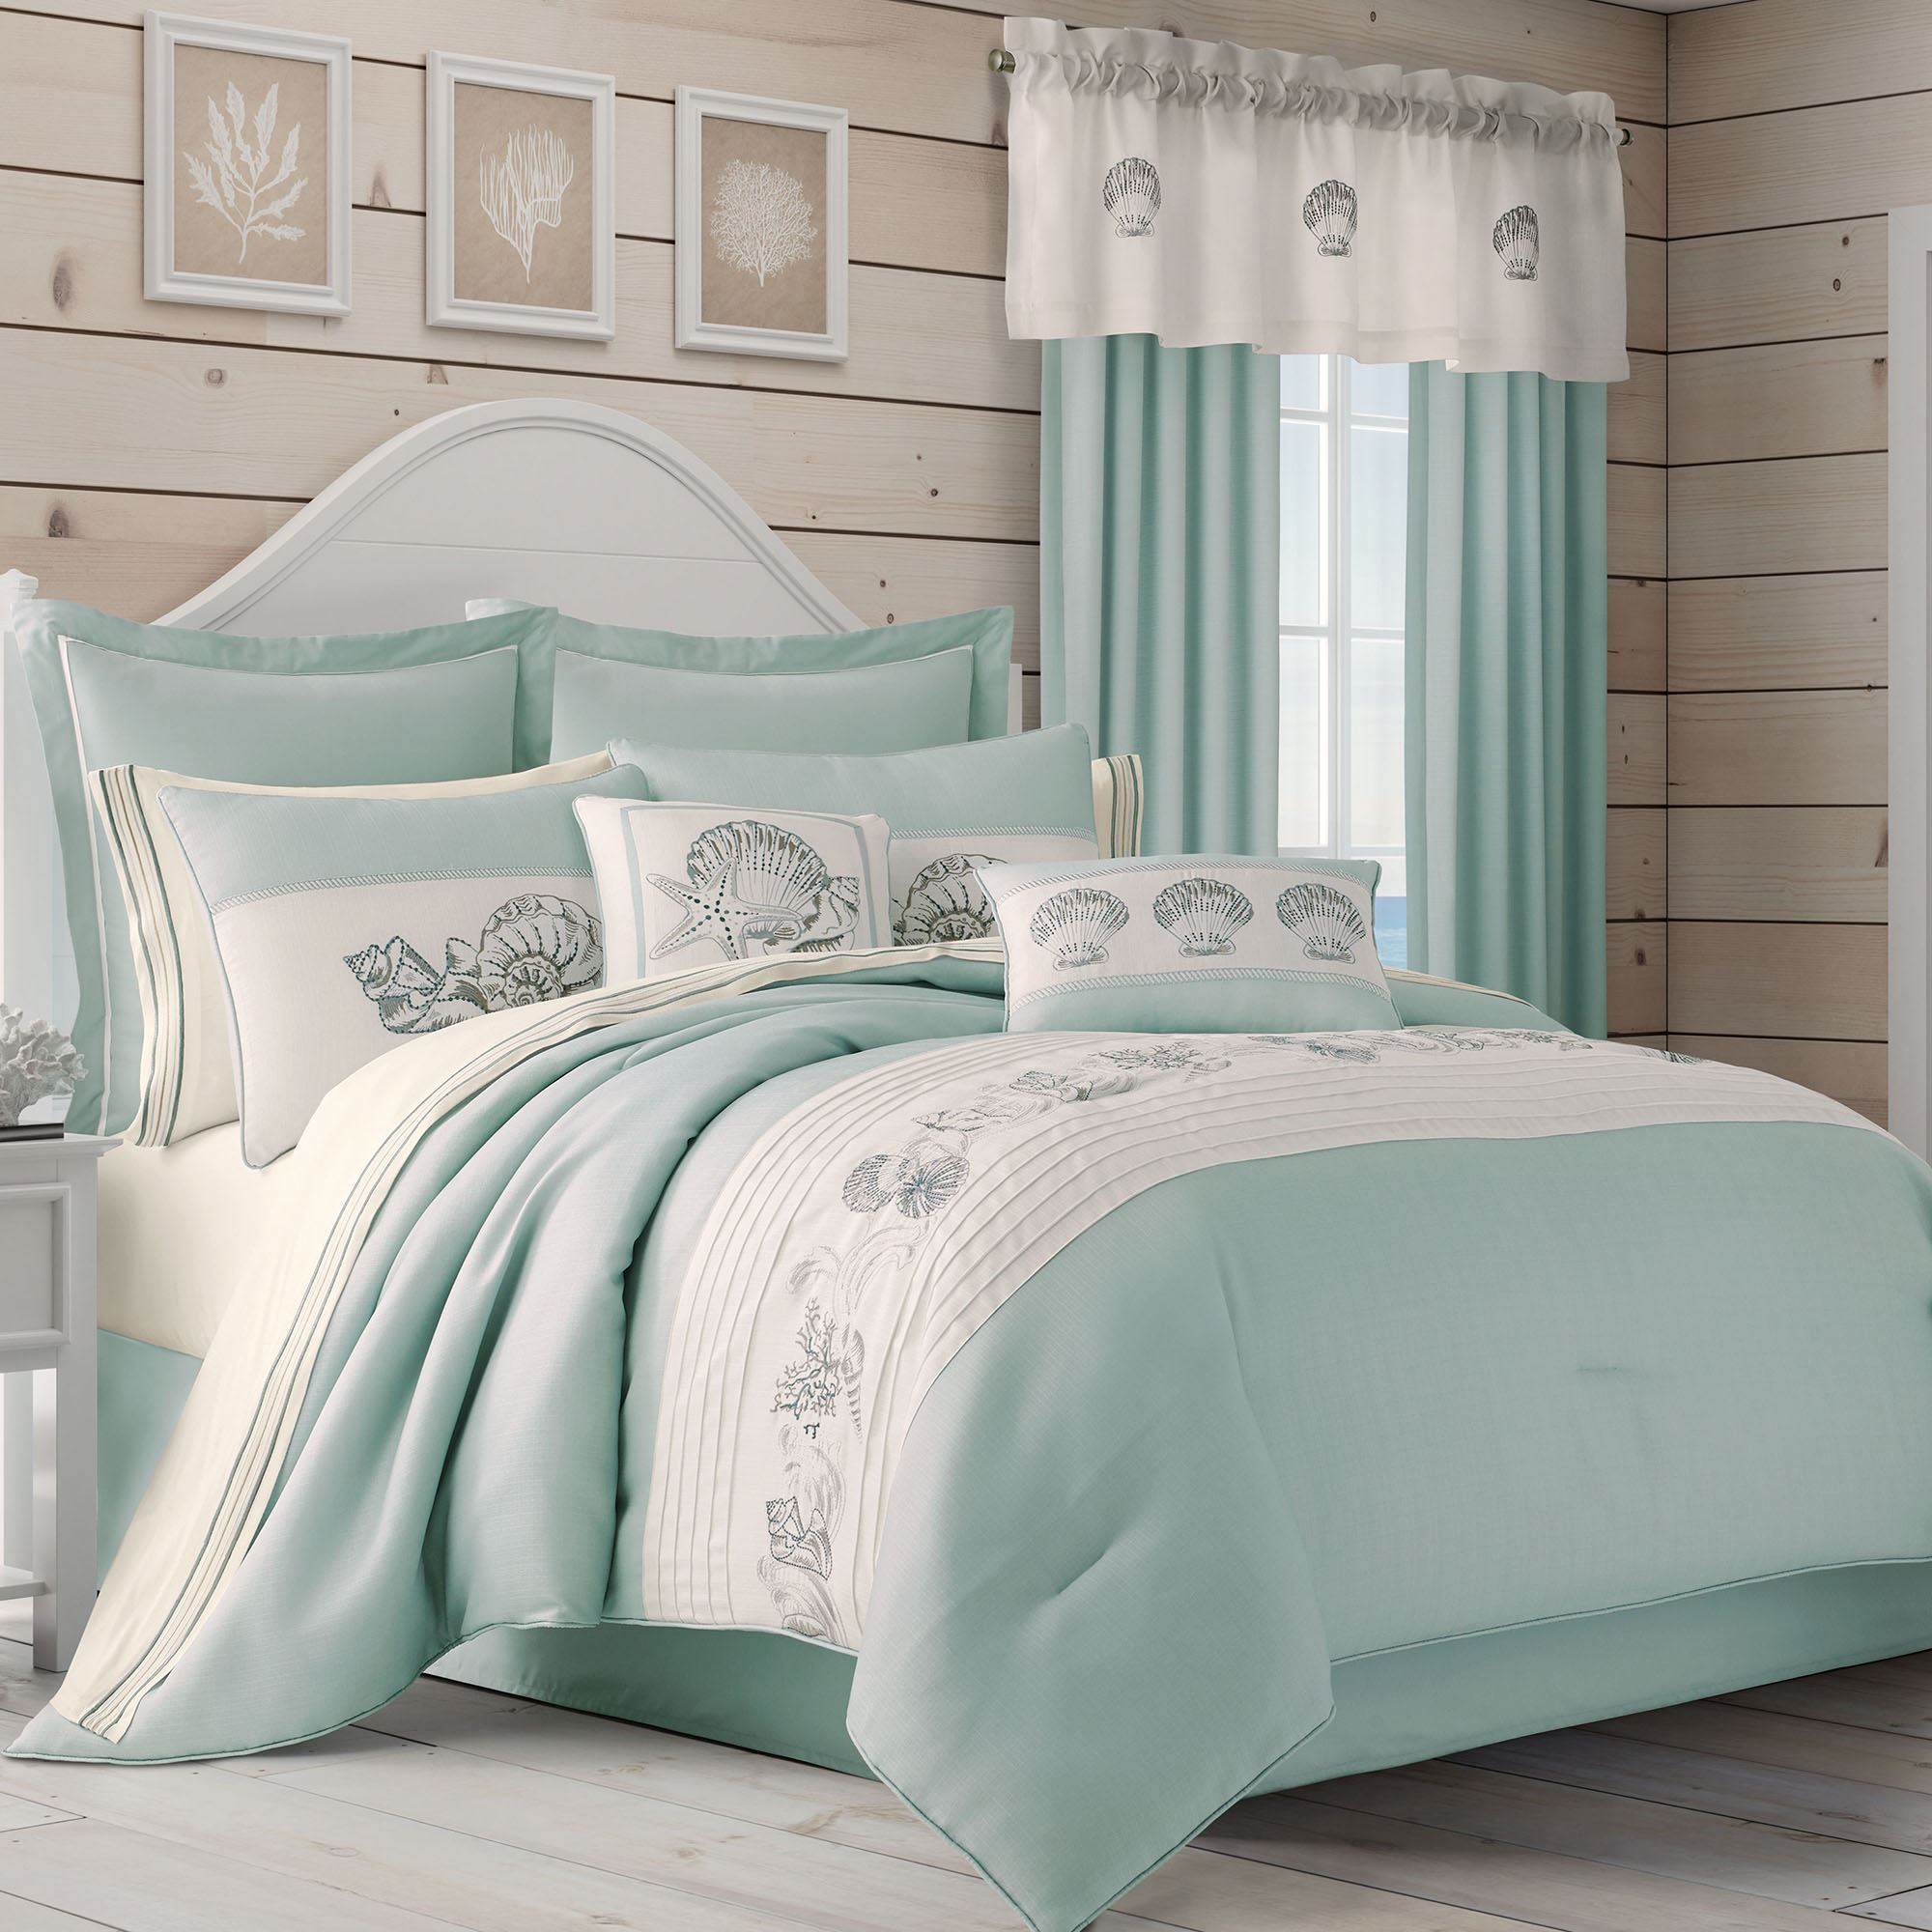 Waters Edge Pale Blue Seashell Coastal Comforter Bedding By Royal Court Home